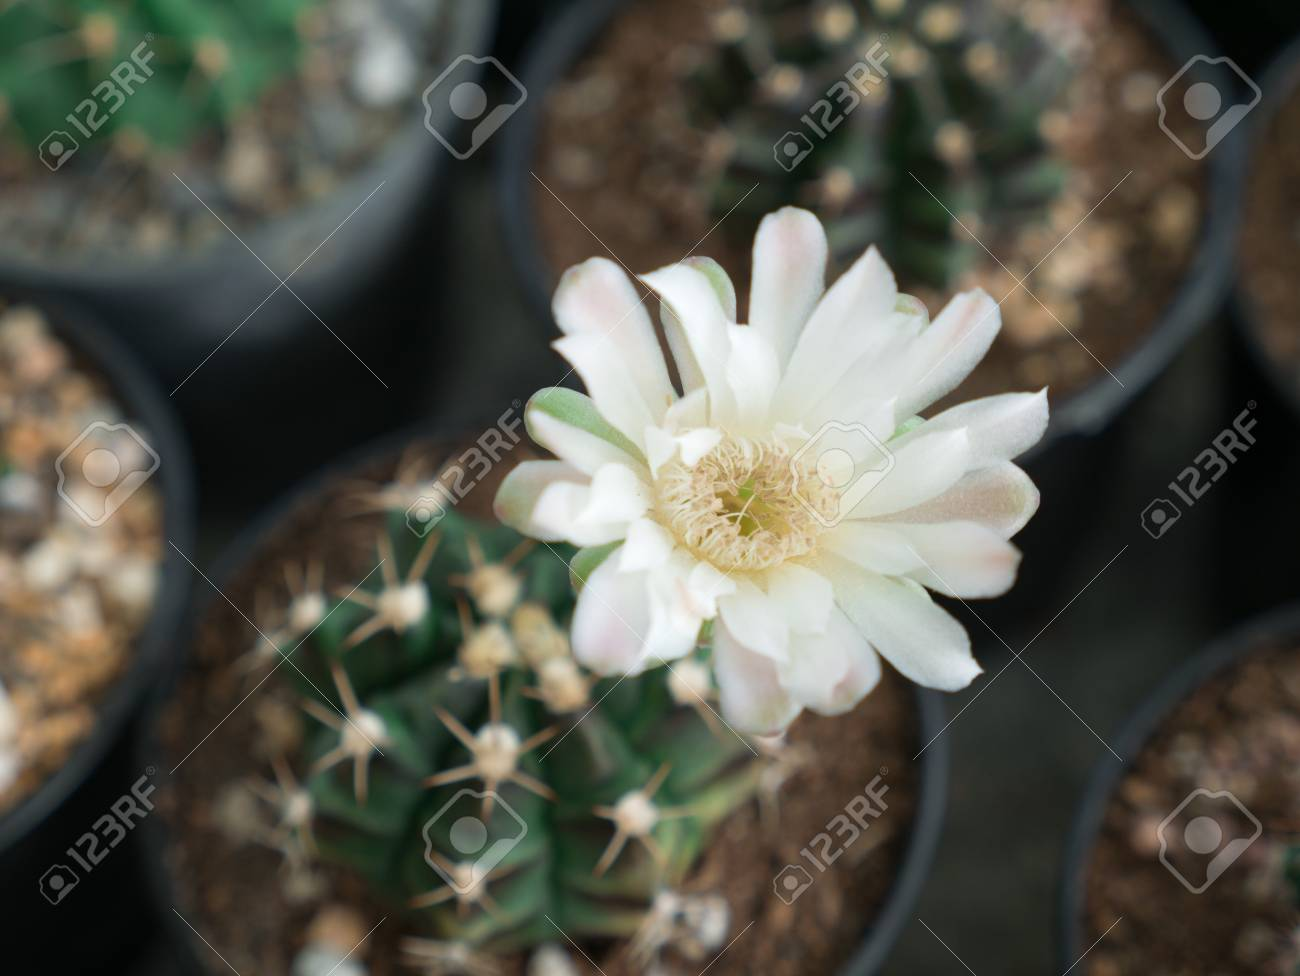 The White Cactus Flower In The Pot Stock Photo Picture And Royalty